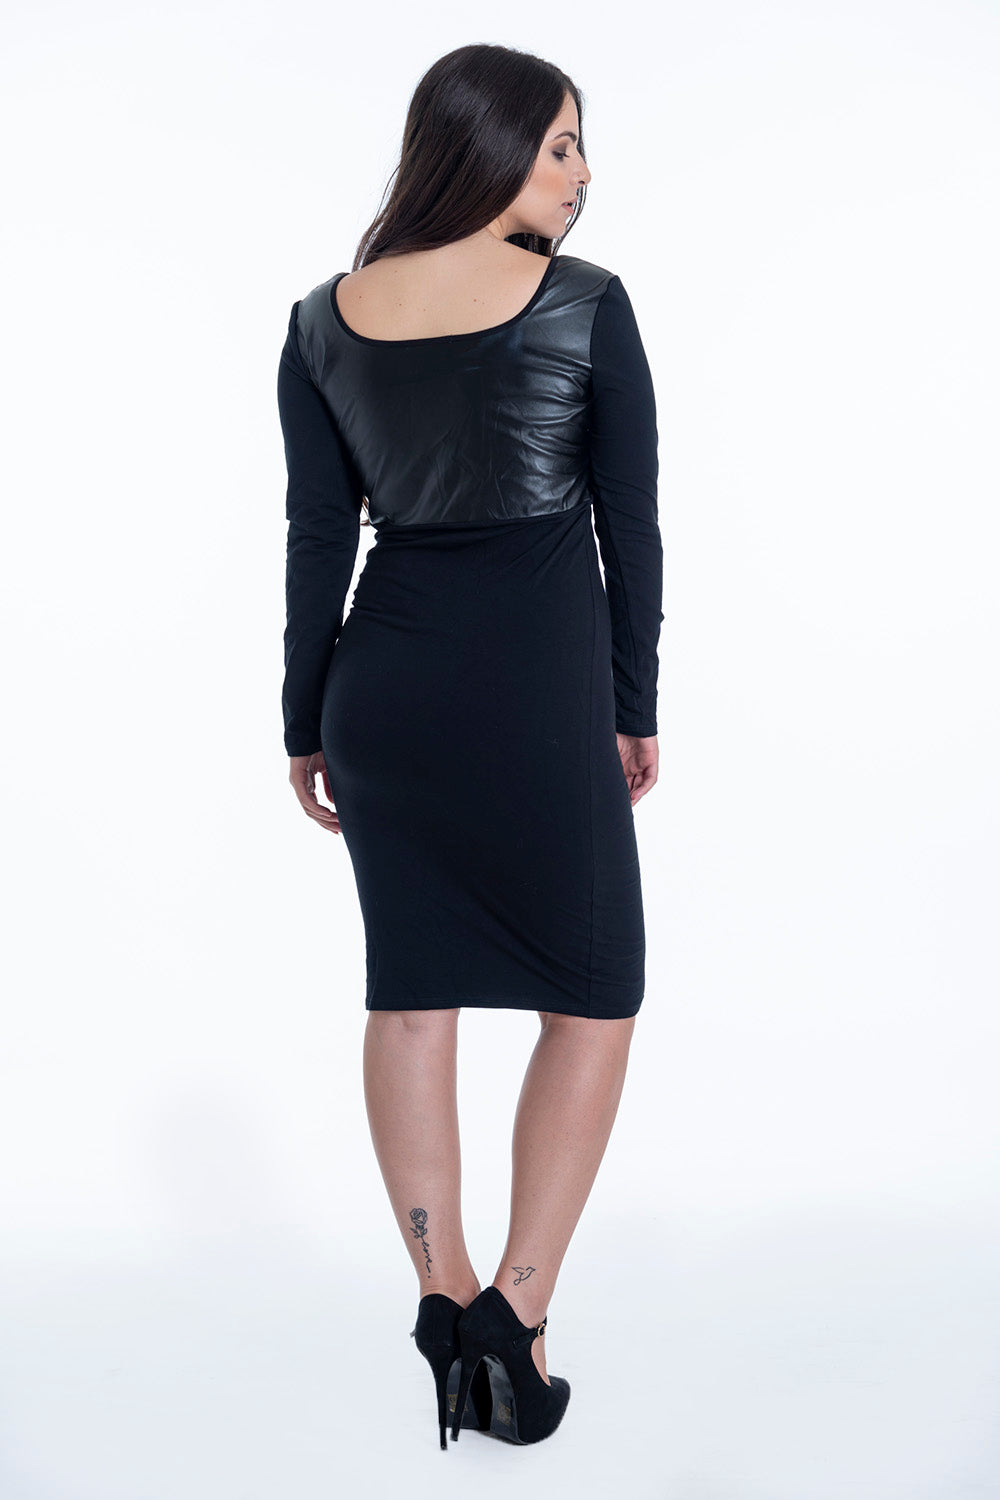 Bojo scoop neck dress with leather top panel